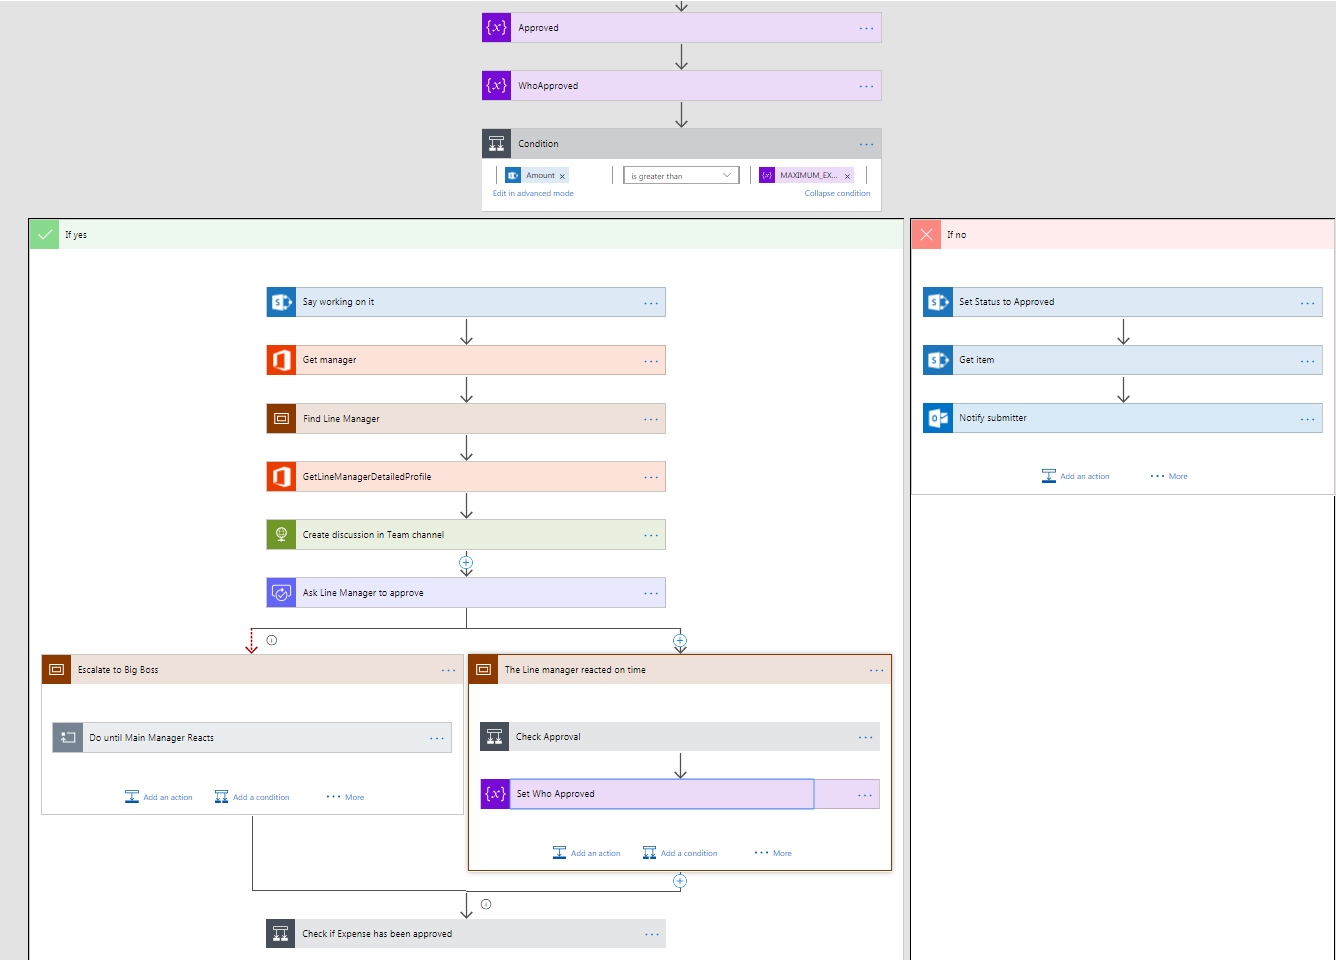 microsoft flow & sharepoint : how to escalate approvals | serge